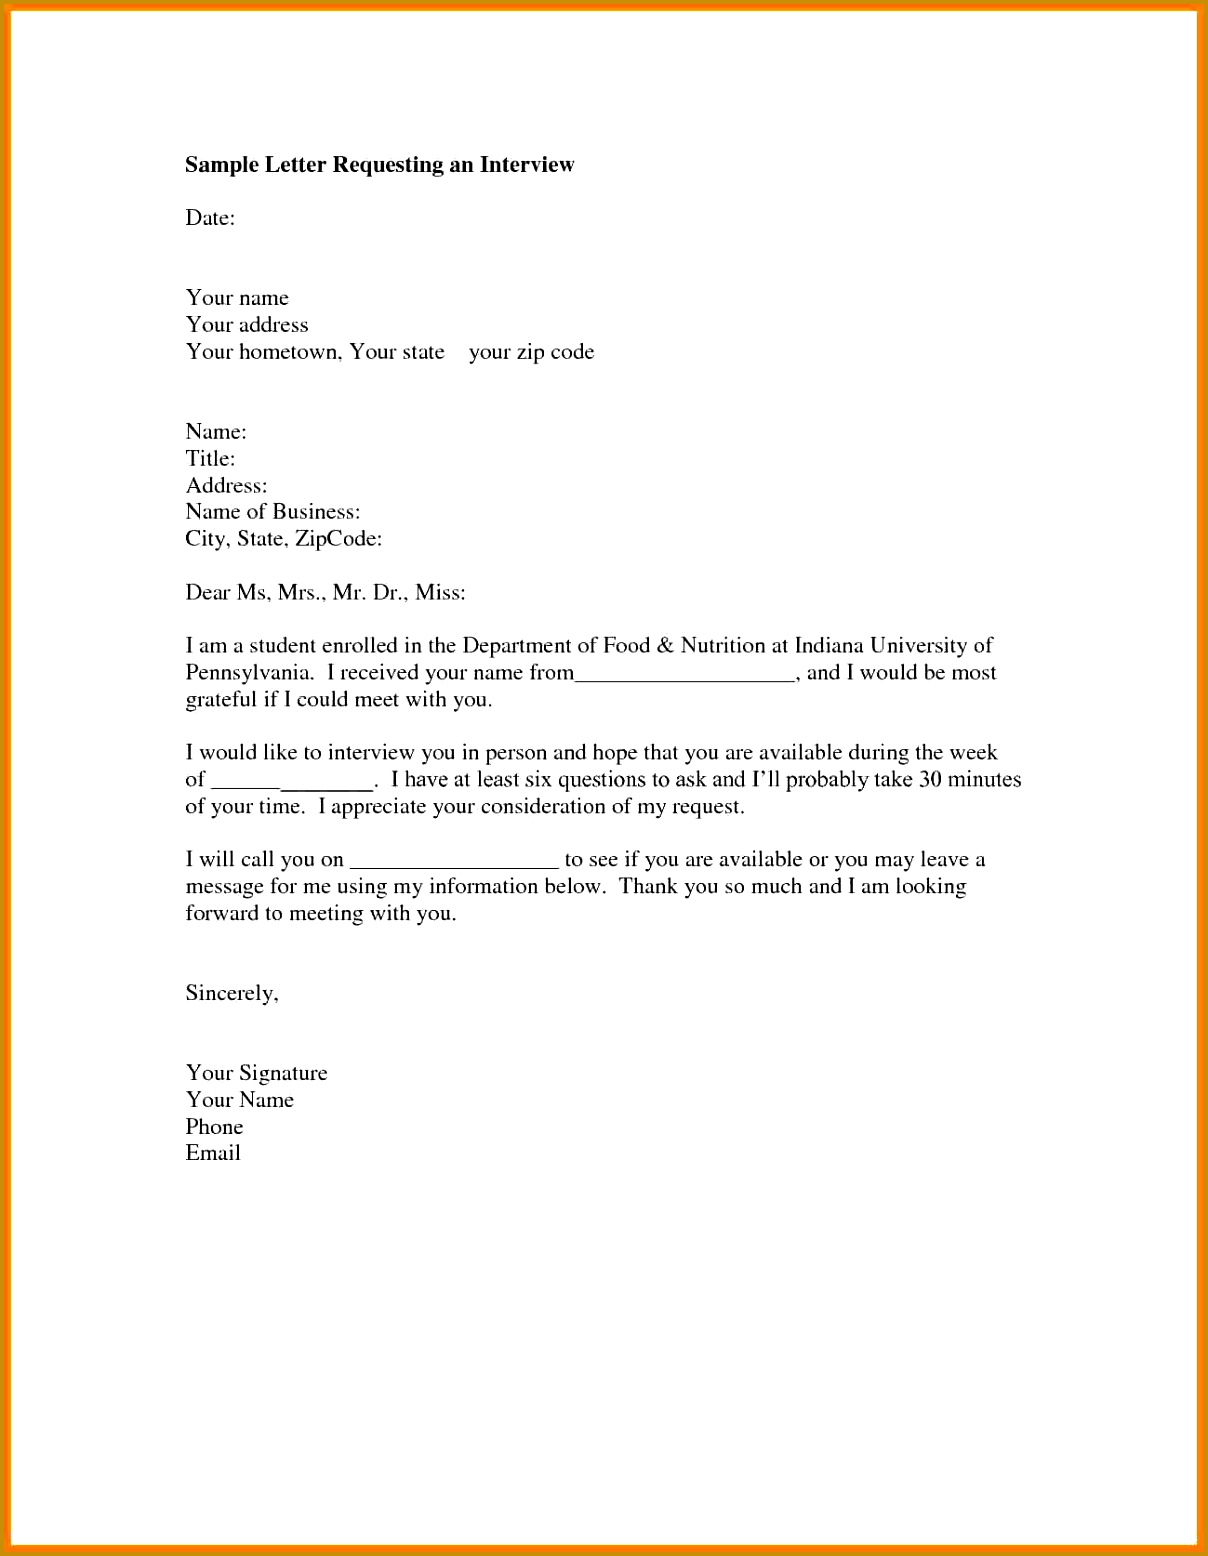 Interview Confirmation Email Sample 63934 4 Interview Confirmation Email Template